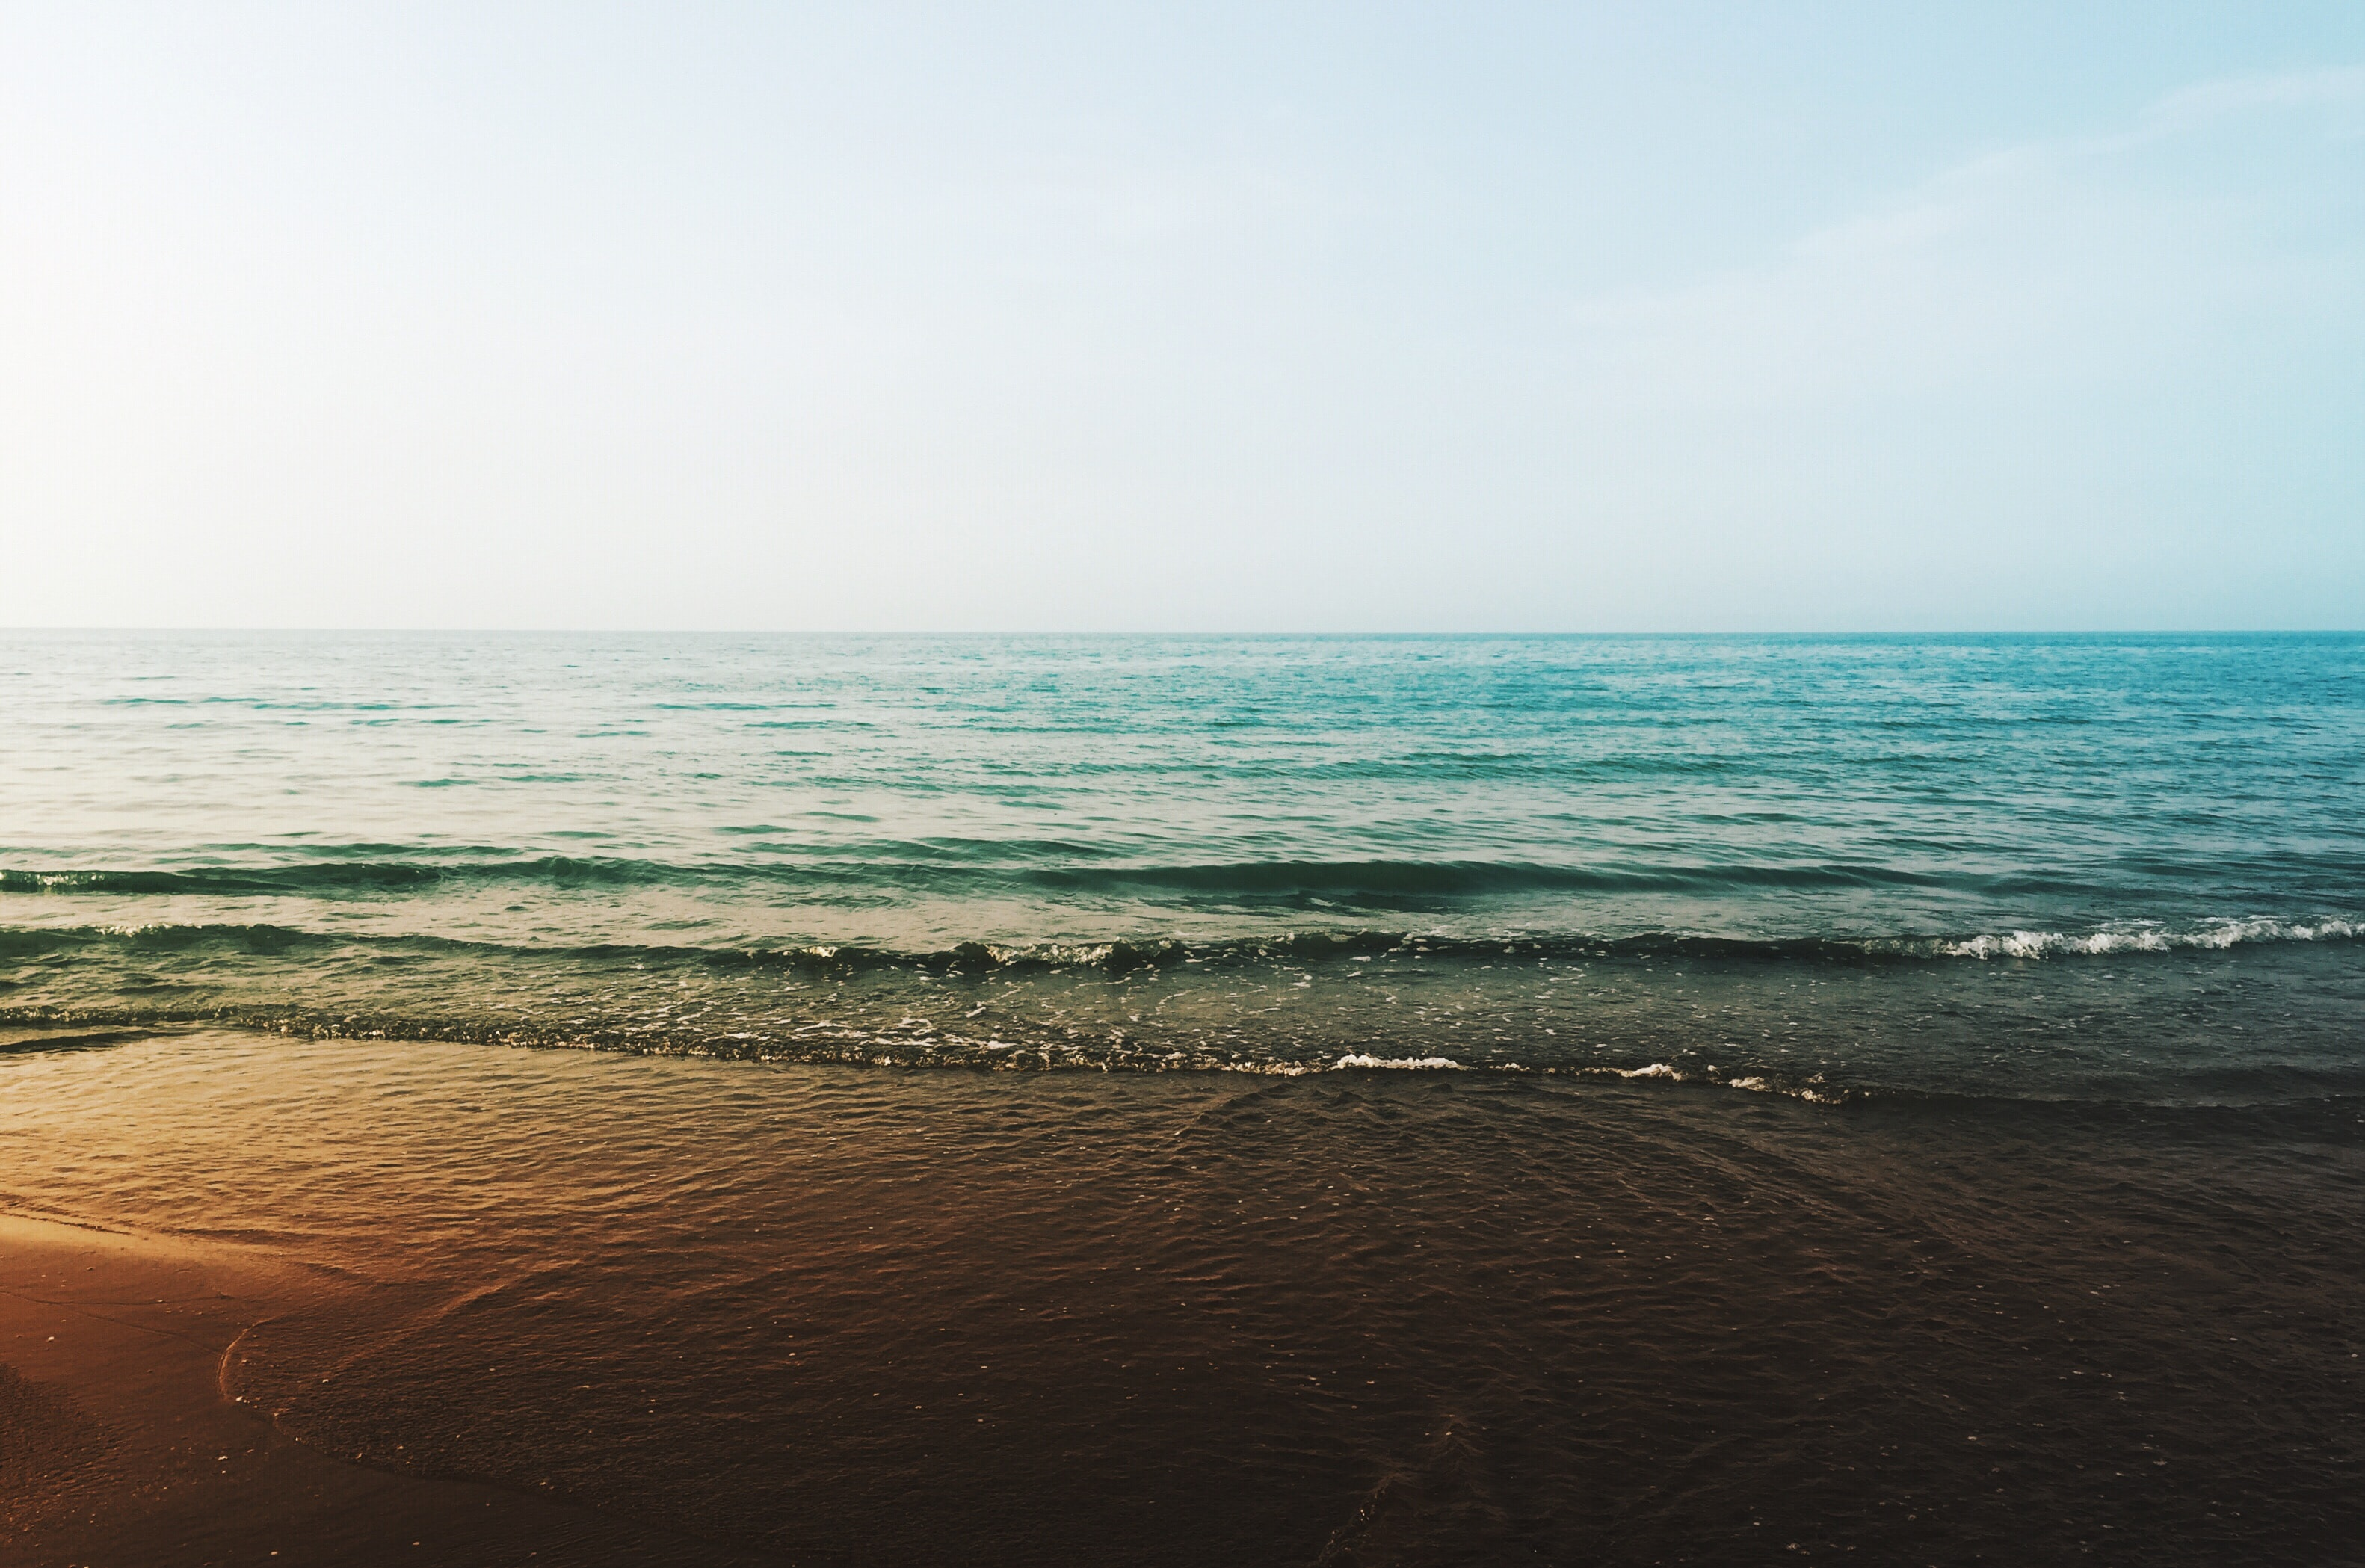 The sea and beach during golden hour in Chaboksar